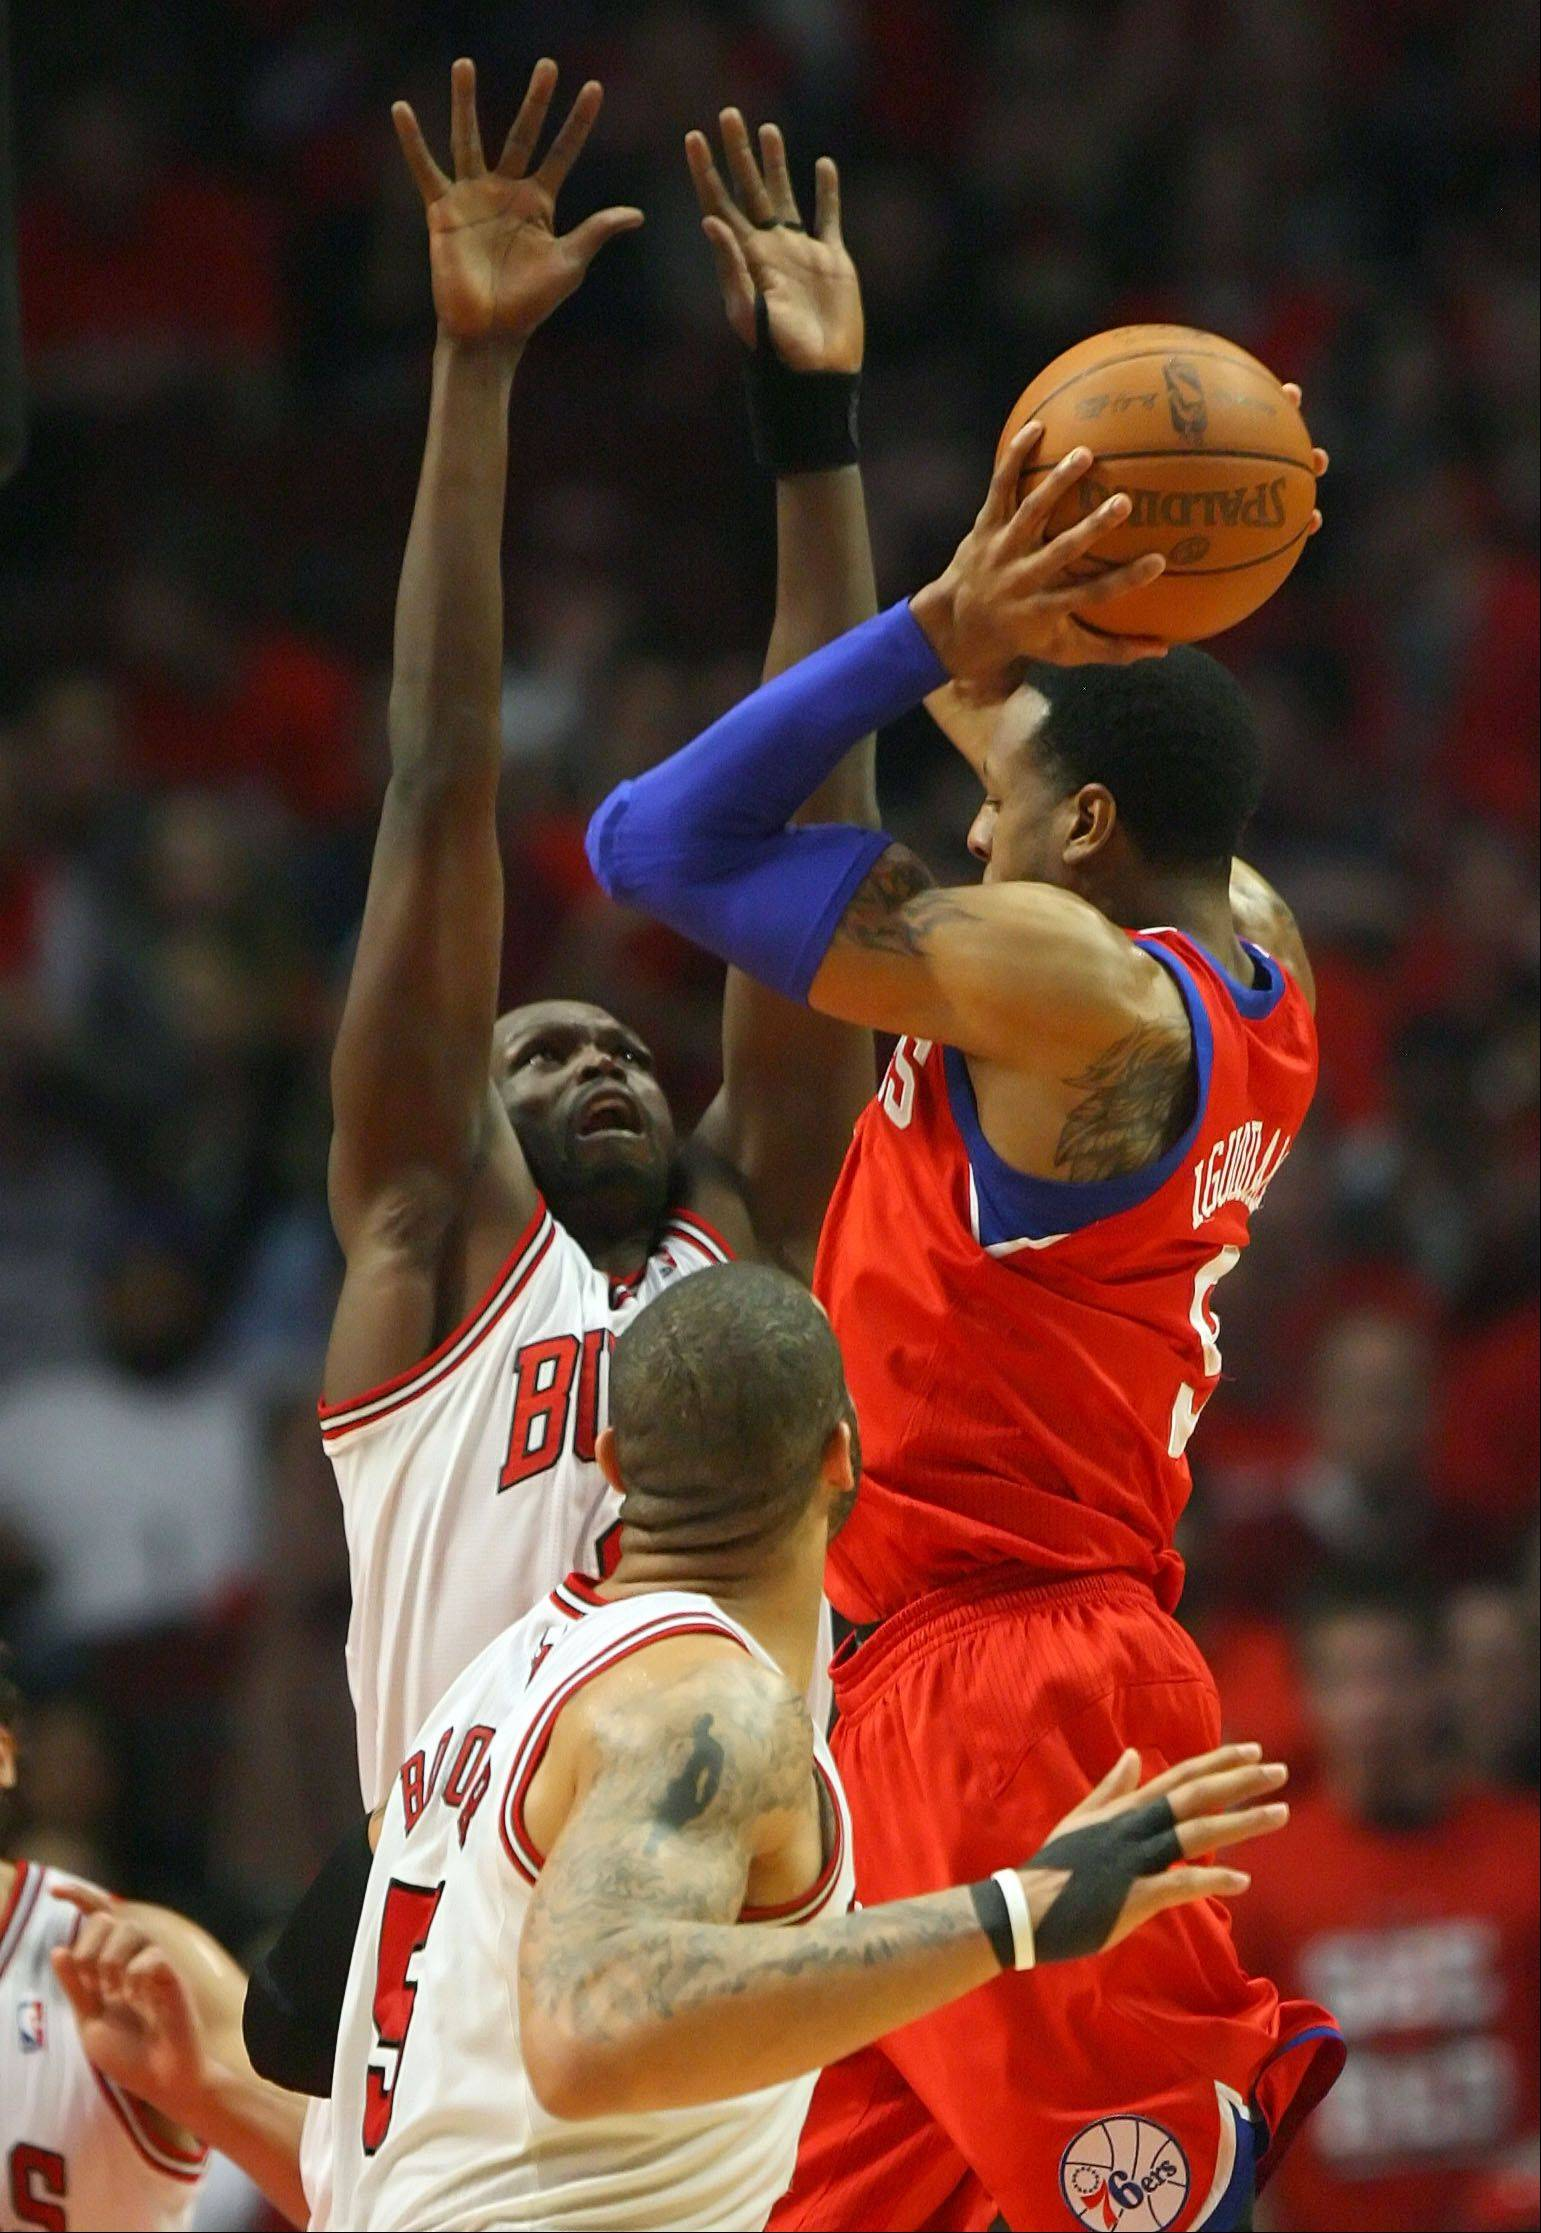 Chicago Bulls' Luol Deng and Philadelphia 76ers' Andre Iguodala battle for a rebound.